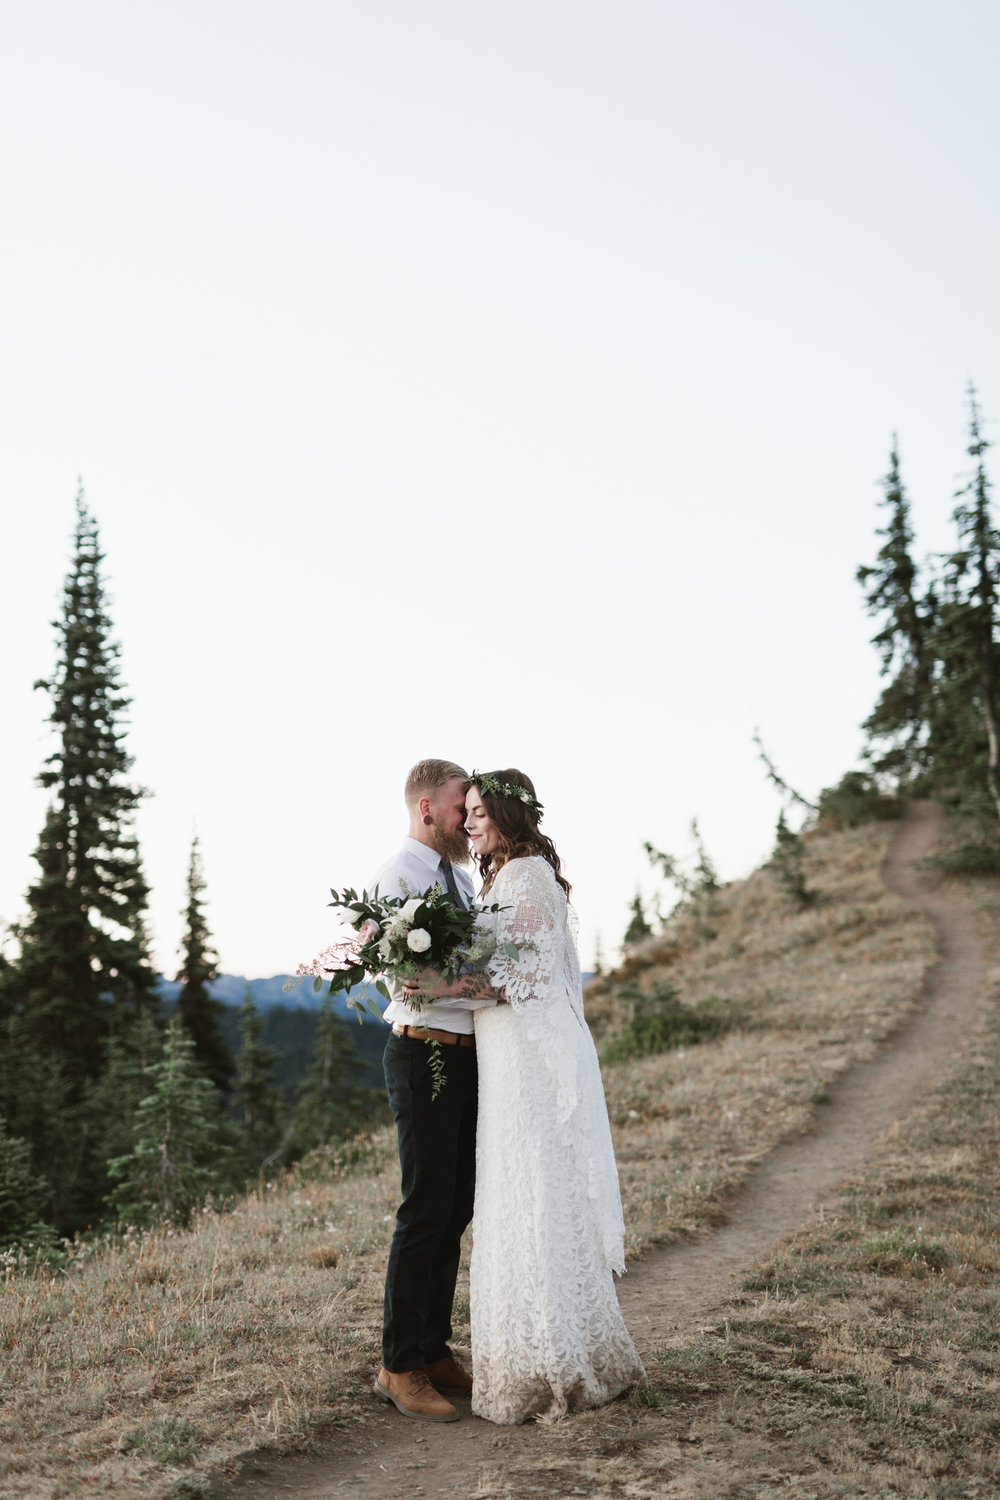 Jesse-Kasie-Hurricane-Ridge-Wedding-17.jpg